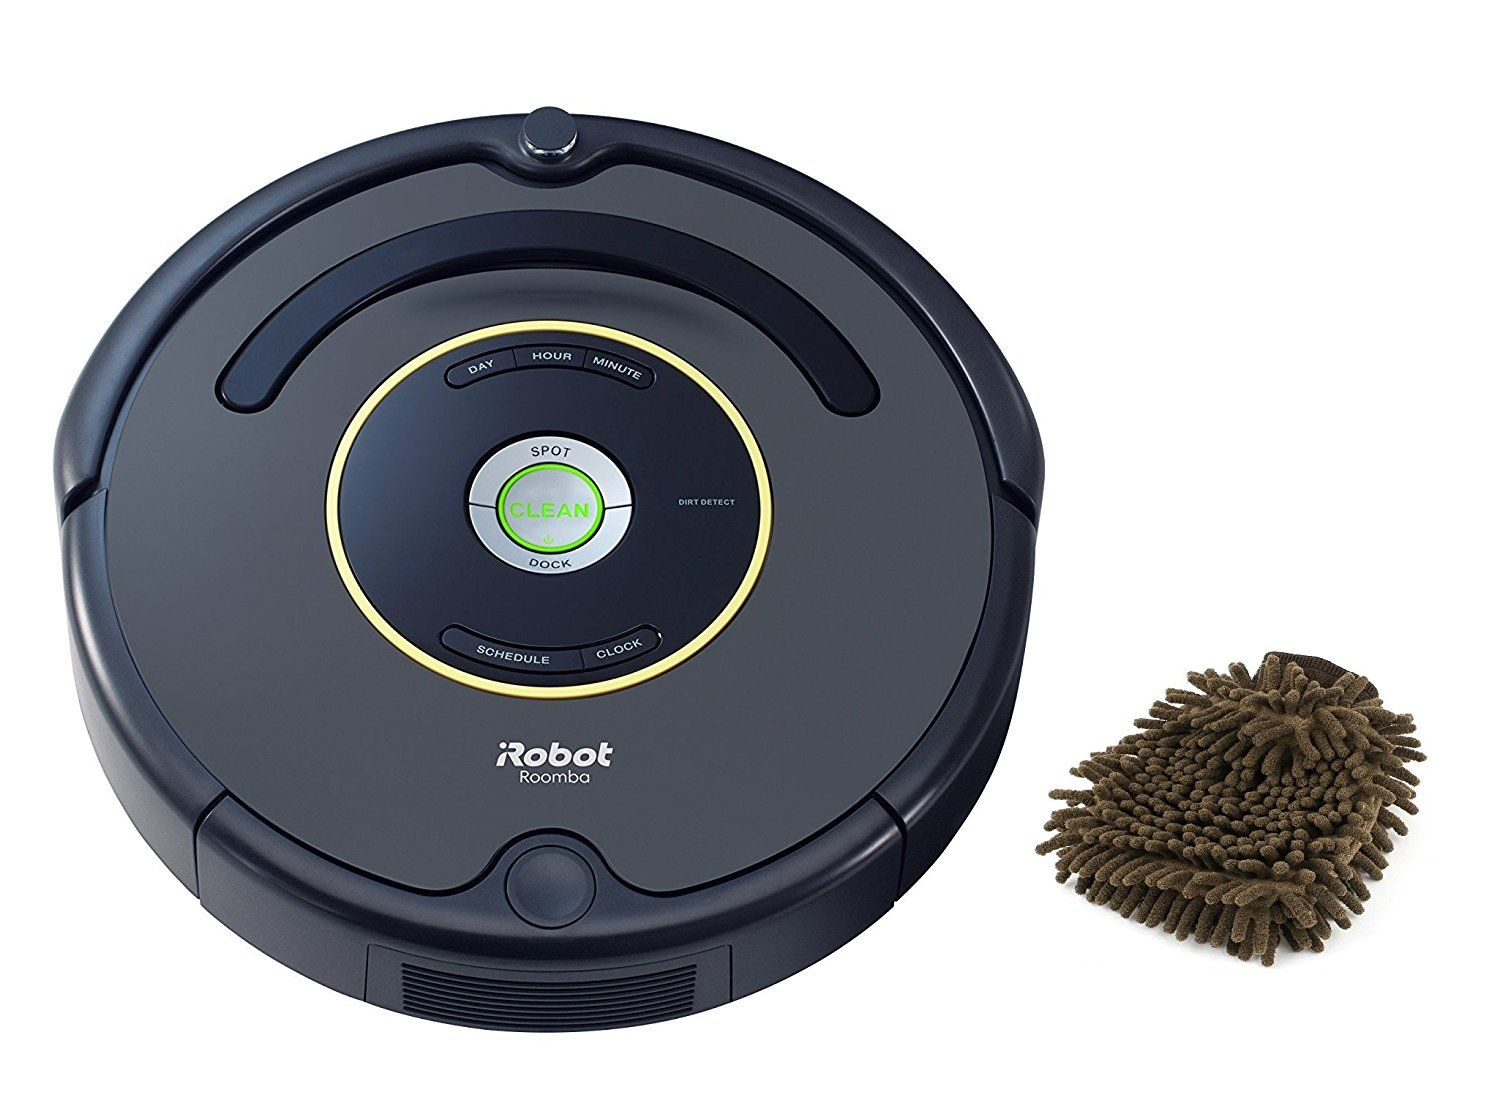 Pin about Vacuums, Robot and Home appliances on